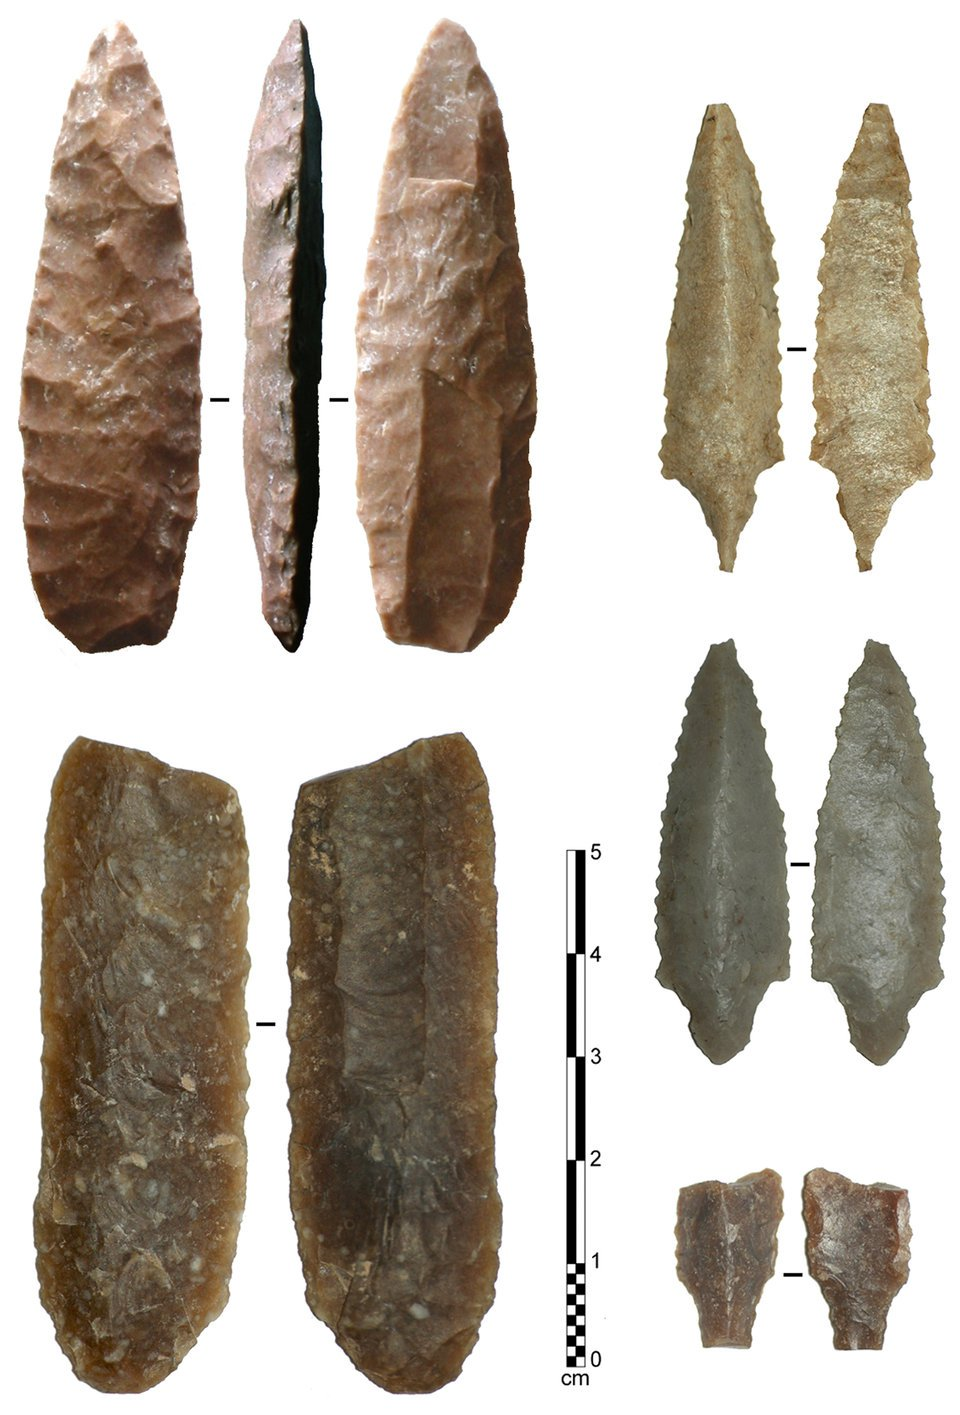 Ancient Artisans in Arabia, the Americas Invented Same Technology Independently